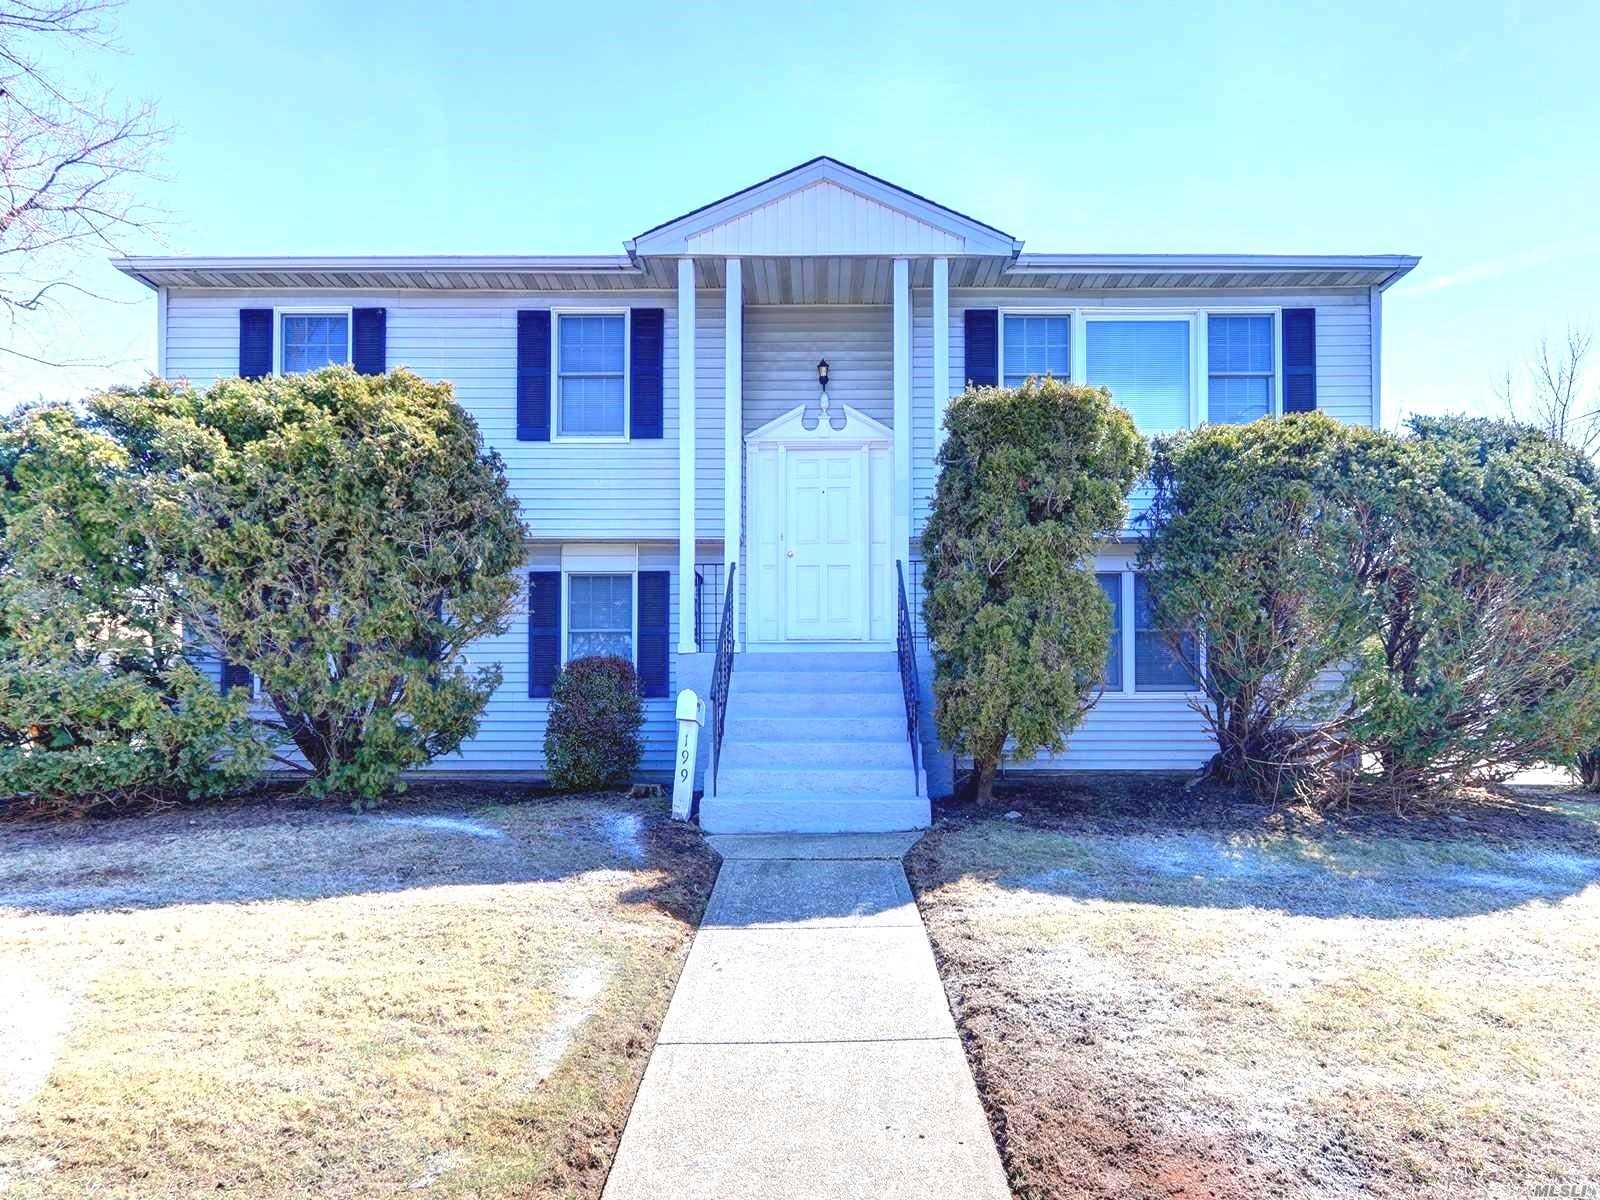 Beautiful Hi-Ranch in Hicksville's prime location! This house has 6 bedrooms and 3 full baths. Huge Eat in kitchen w/SS Appliances, formal dining, attic, office. Possible mother-daughter. Convenient location close to LIRR, places of worship, shopping! Entrance on 1st St. Huge property, must see!!